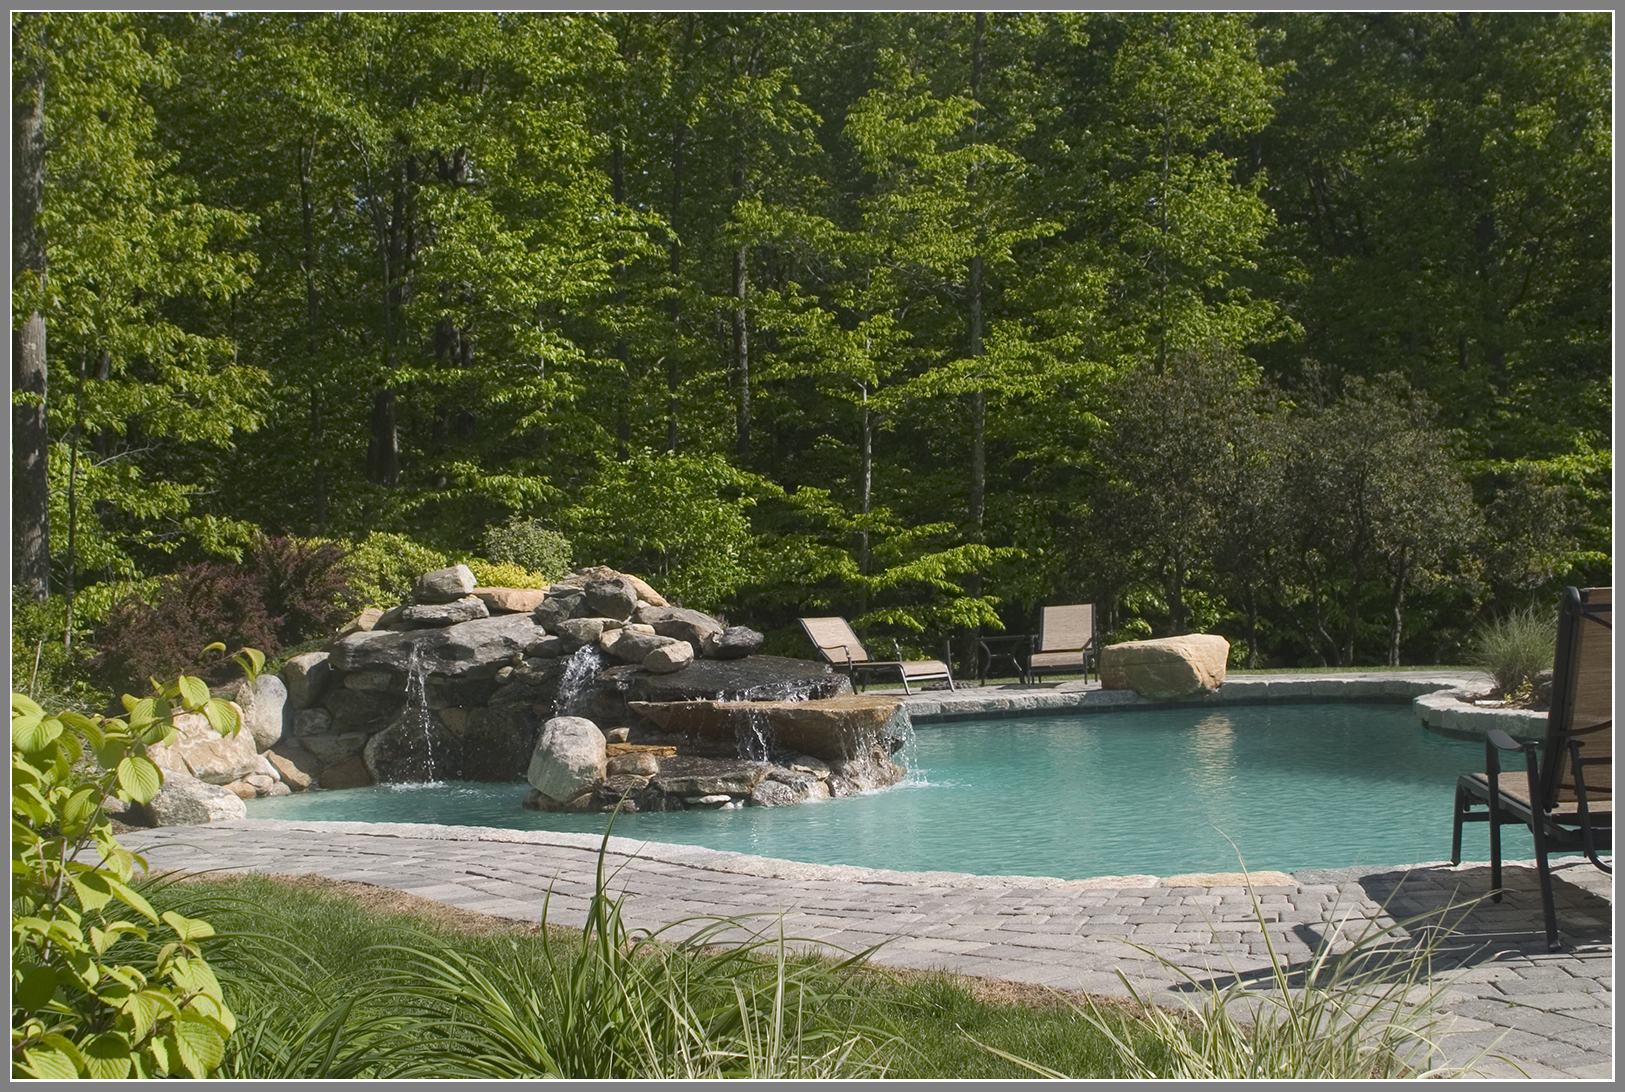 Swimming pool design with lagoon and waterfalls.